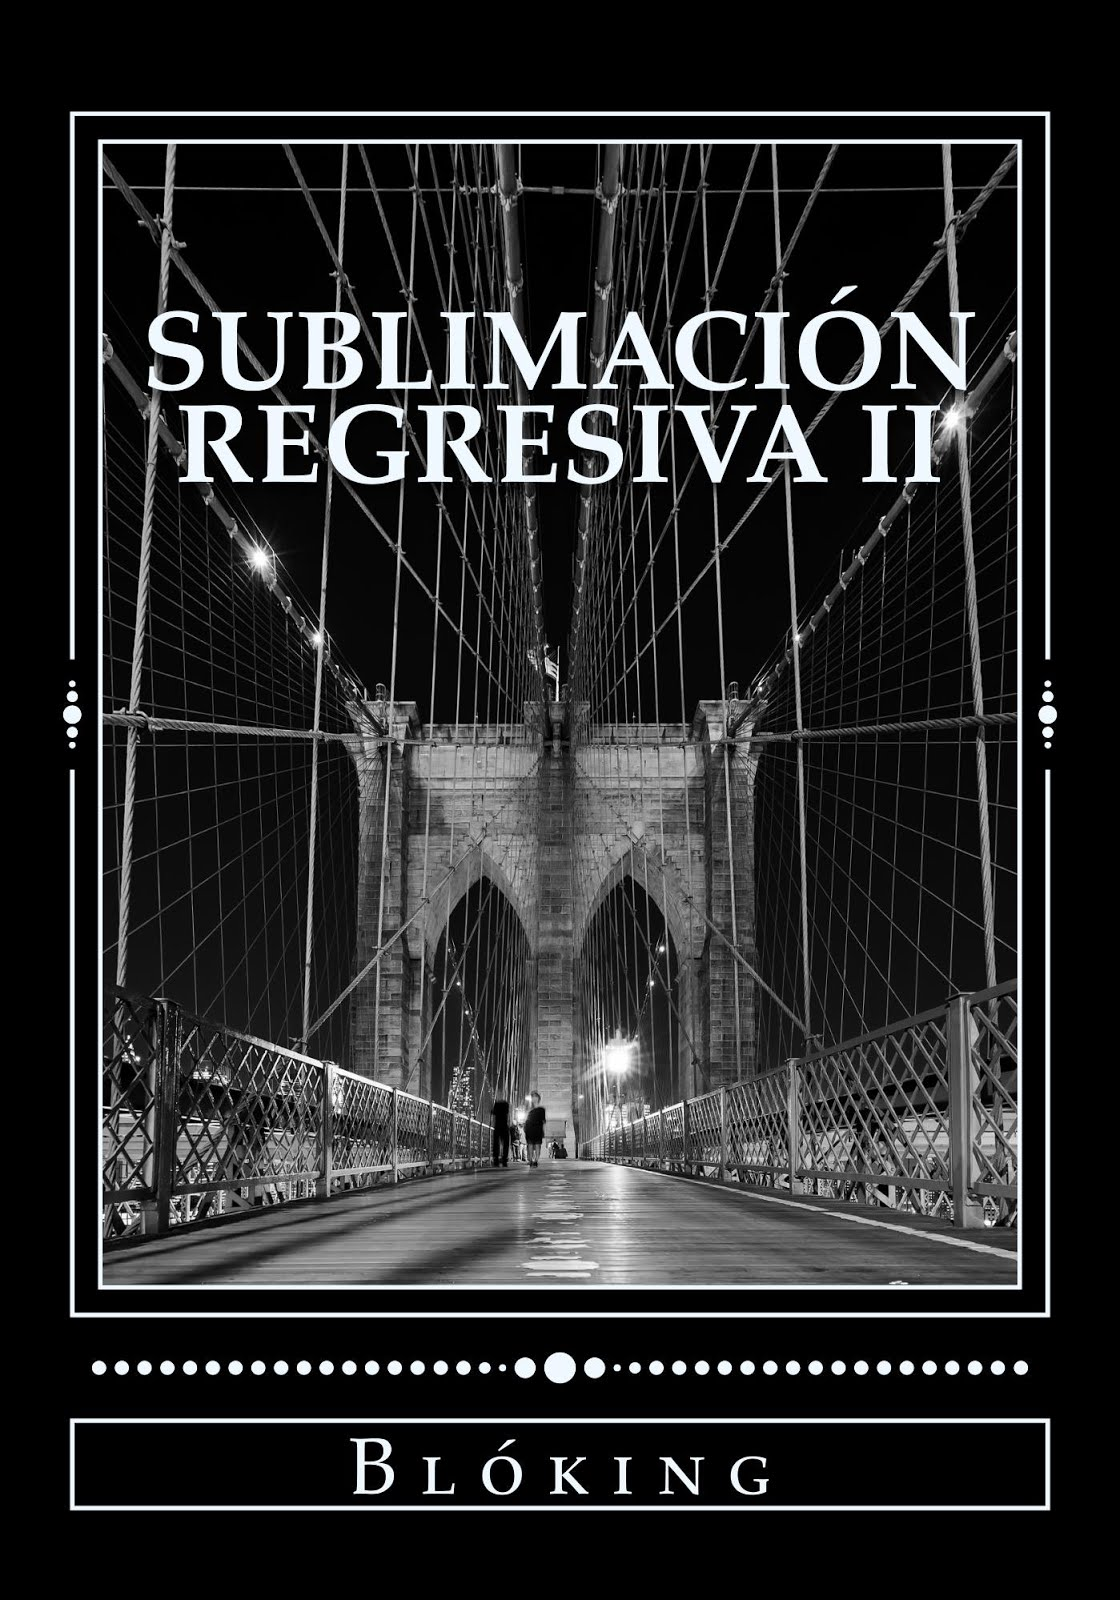 #Obra 35 - Sublimación regresiva II